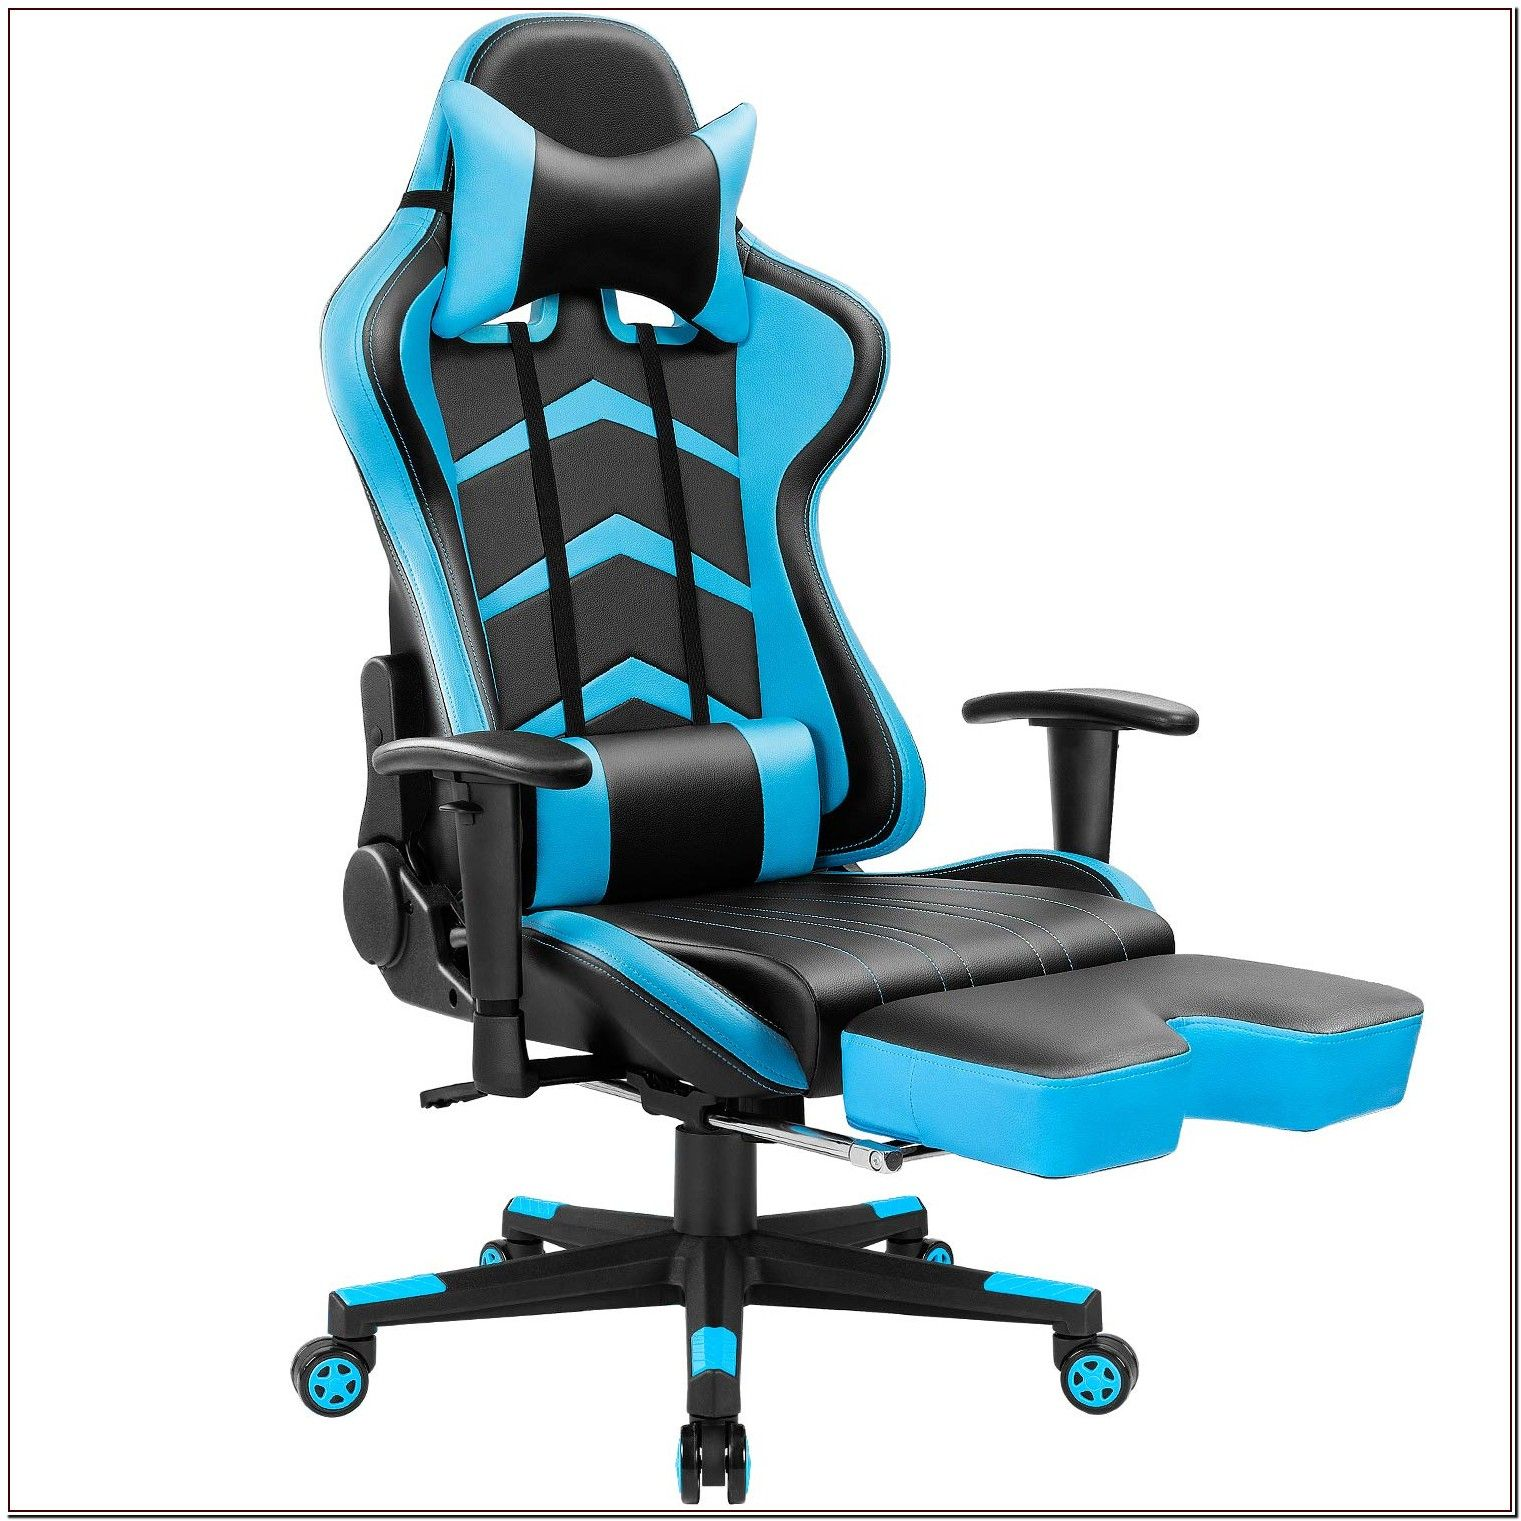 79 Reference Of Blue Swivel Chair With Footrest Gaming Chair Racing Chair Chair